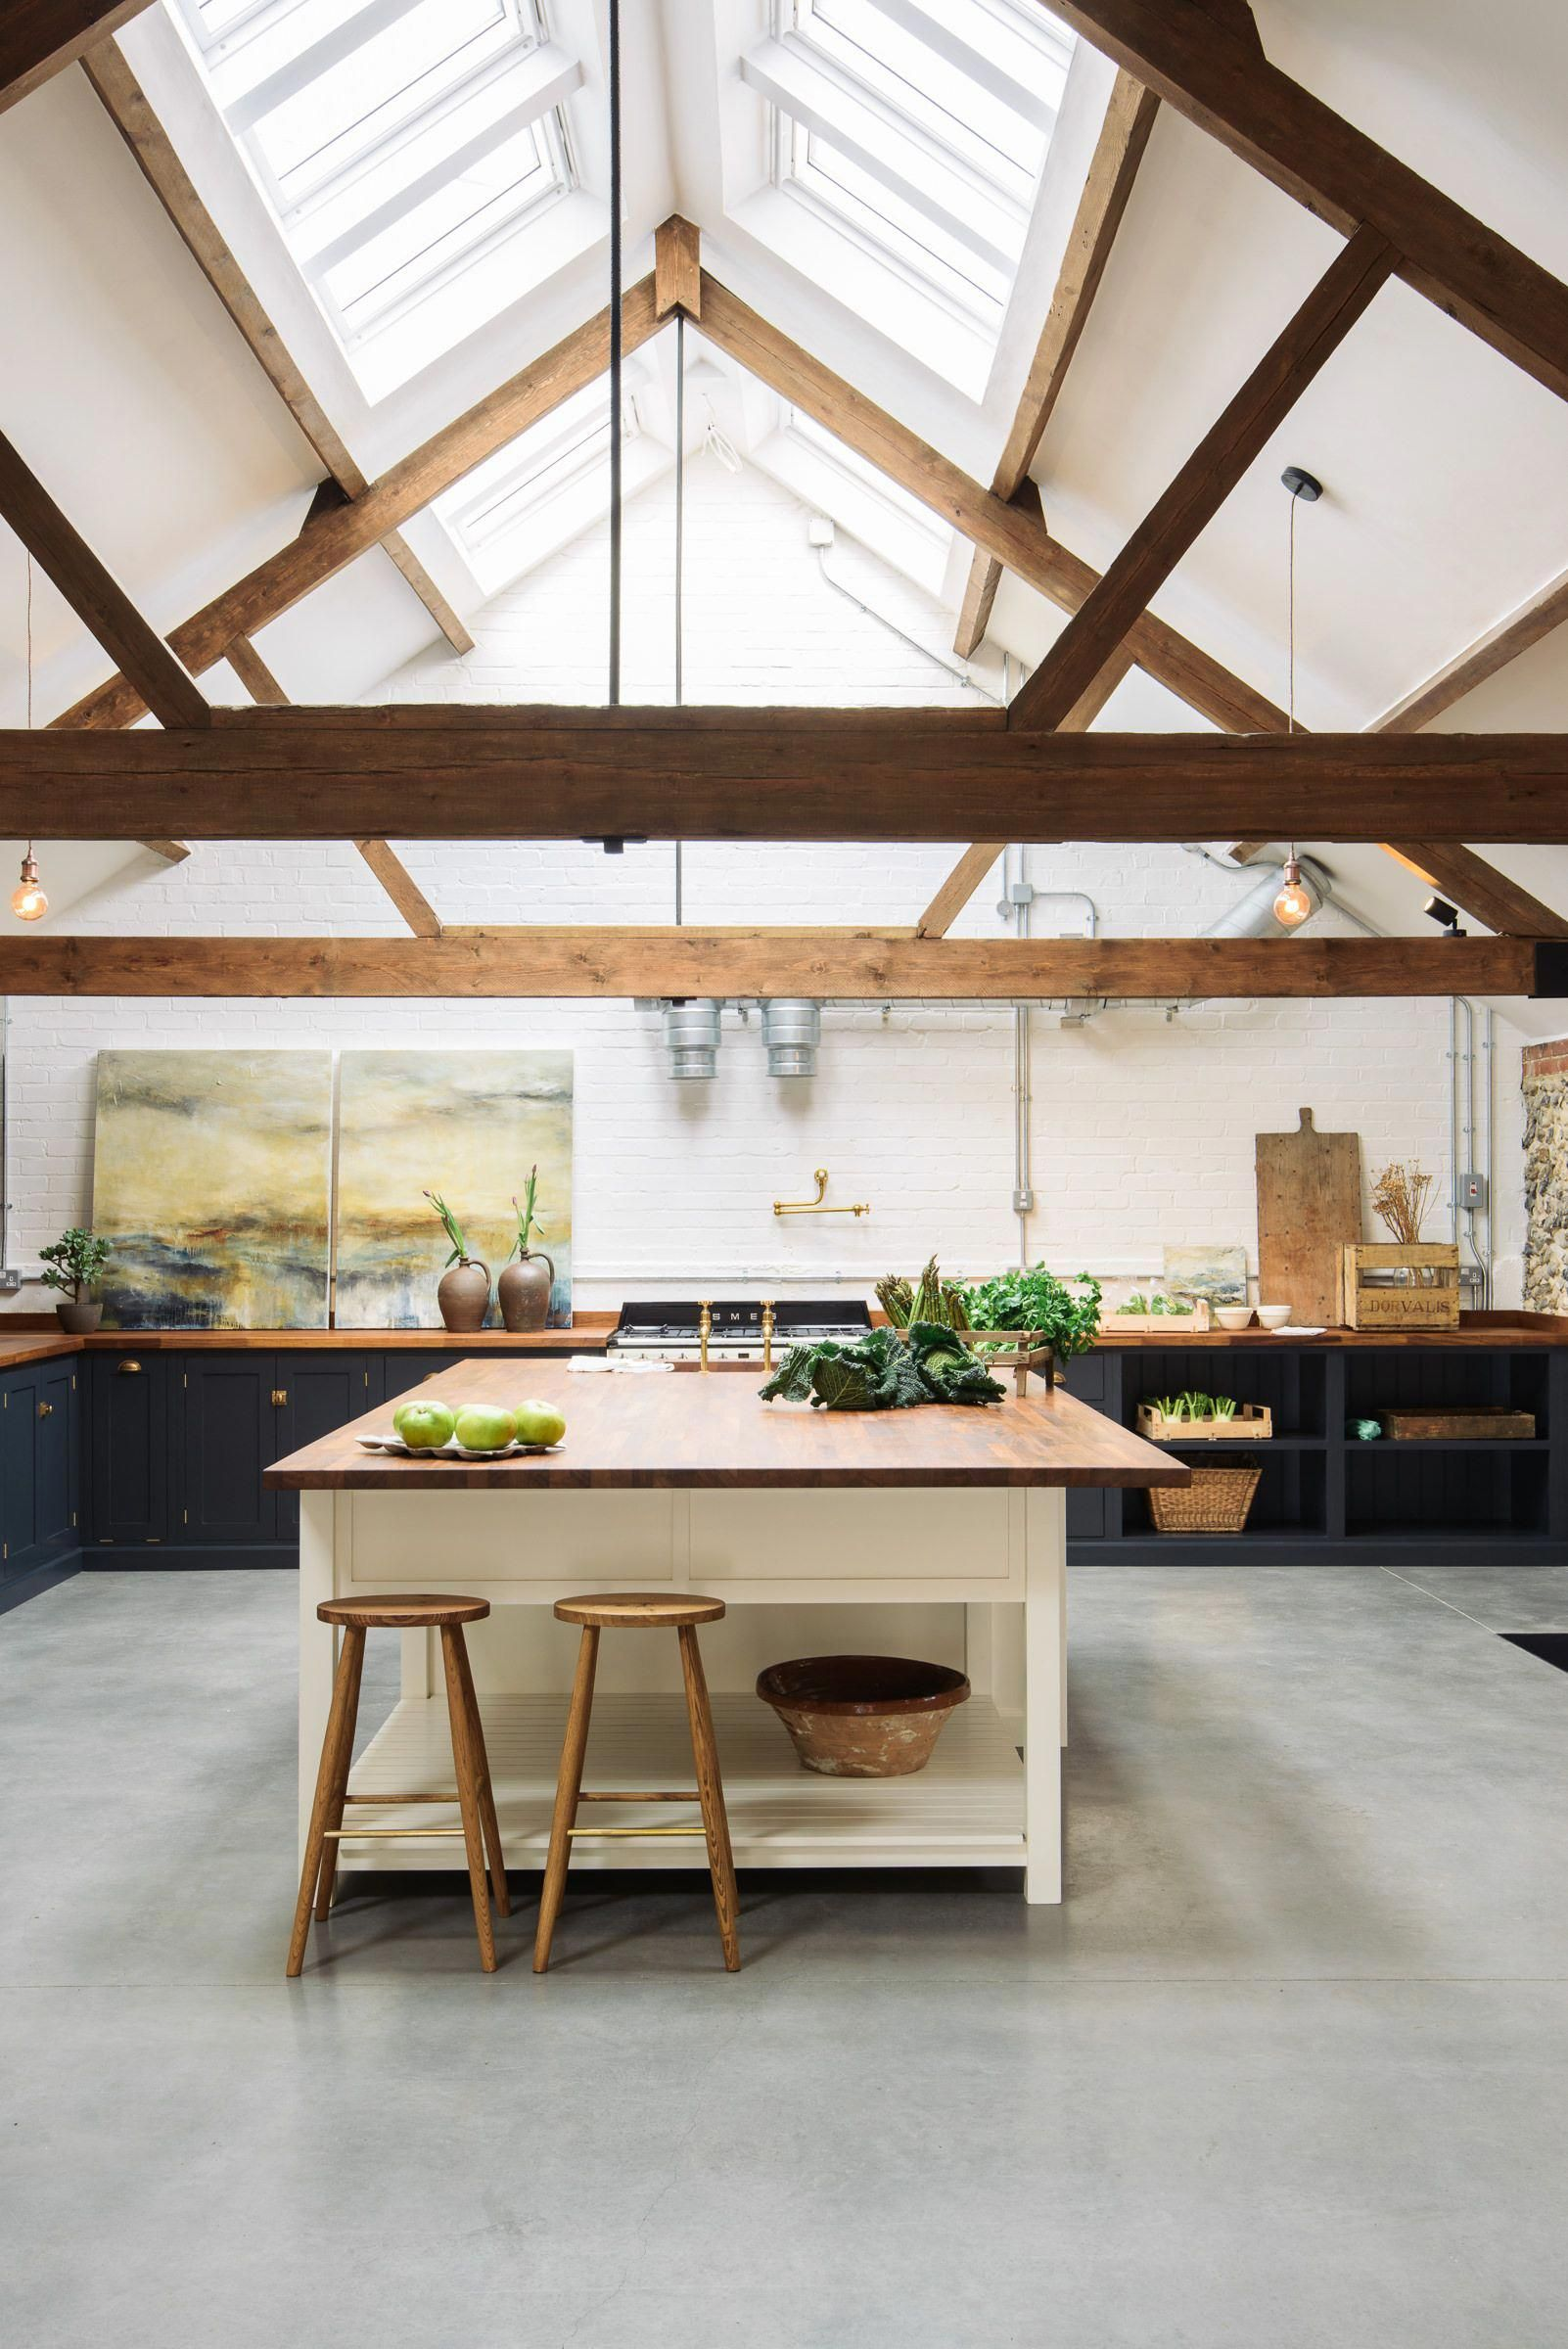 The Cattle Shed In Wighton Is An Old Carefully Renovated Cow Shed And Now Has A Lovely Real Shaker Rustic Modern Kitchen Devol Kitchens Modern Shaker Kitchen